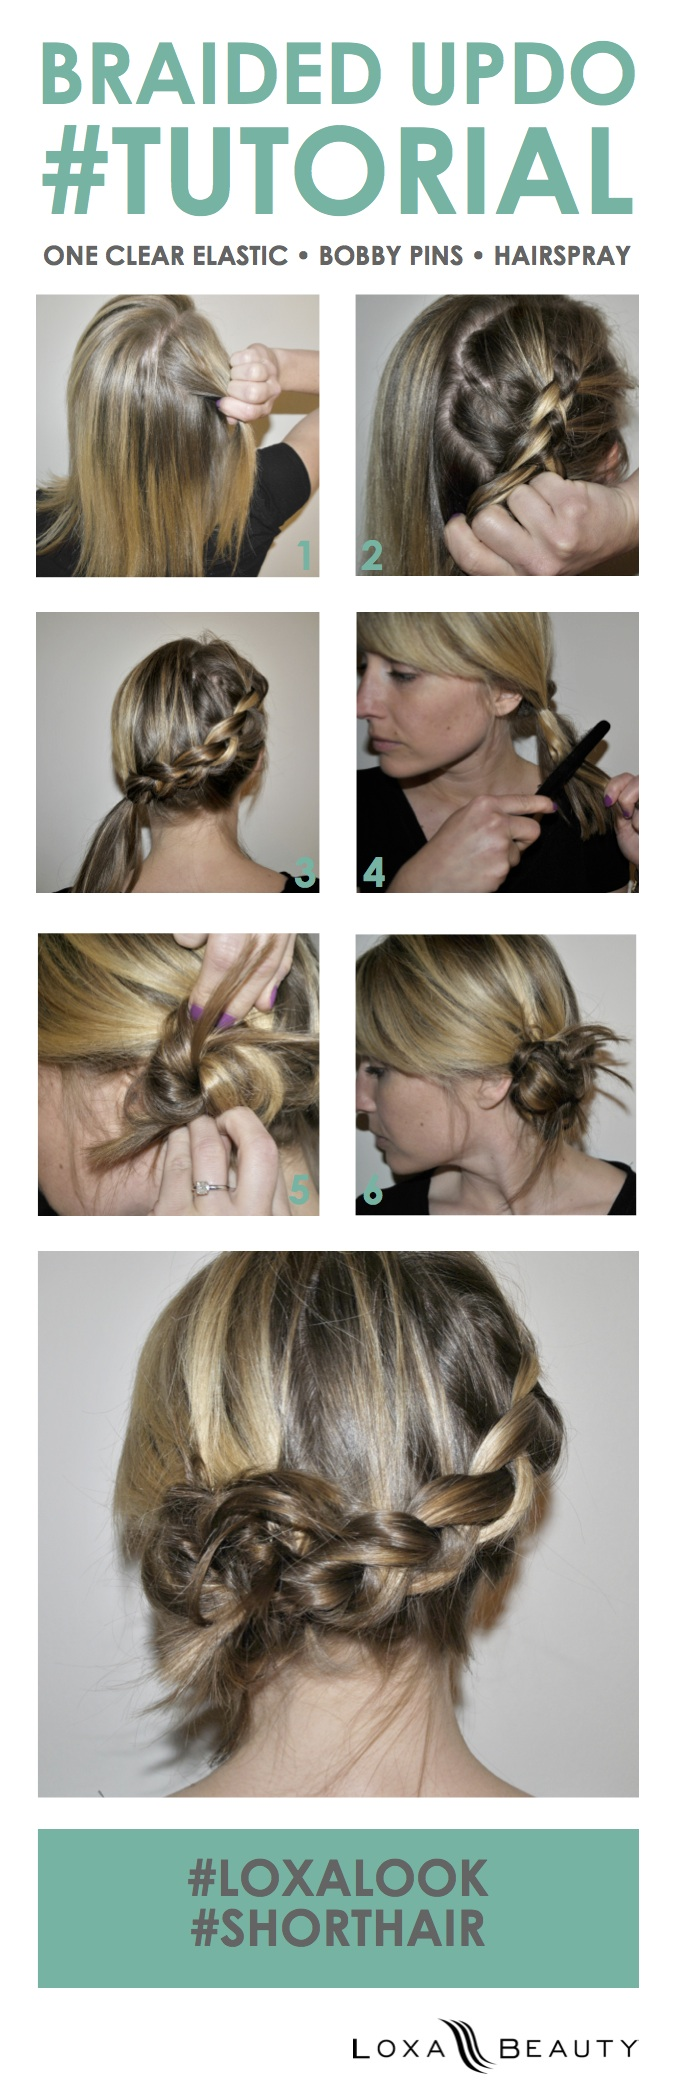 Braid Updo Tutorial For Short Hair The Layer Short Hair Tutorial Braid Updo Tutorial Braids For Short Hair